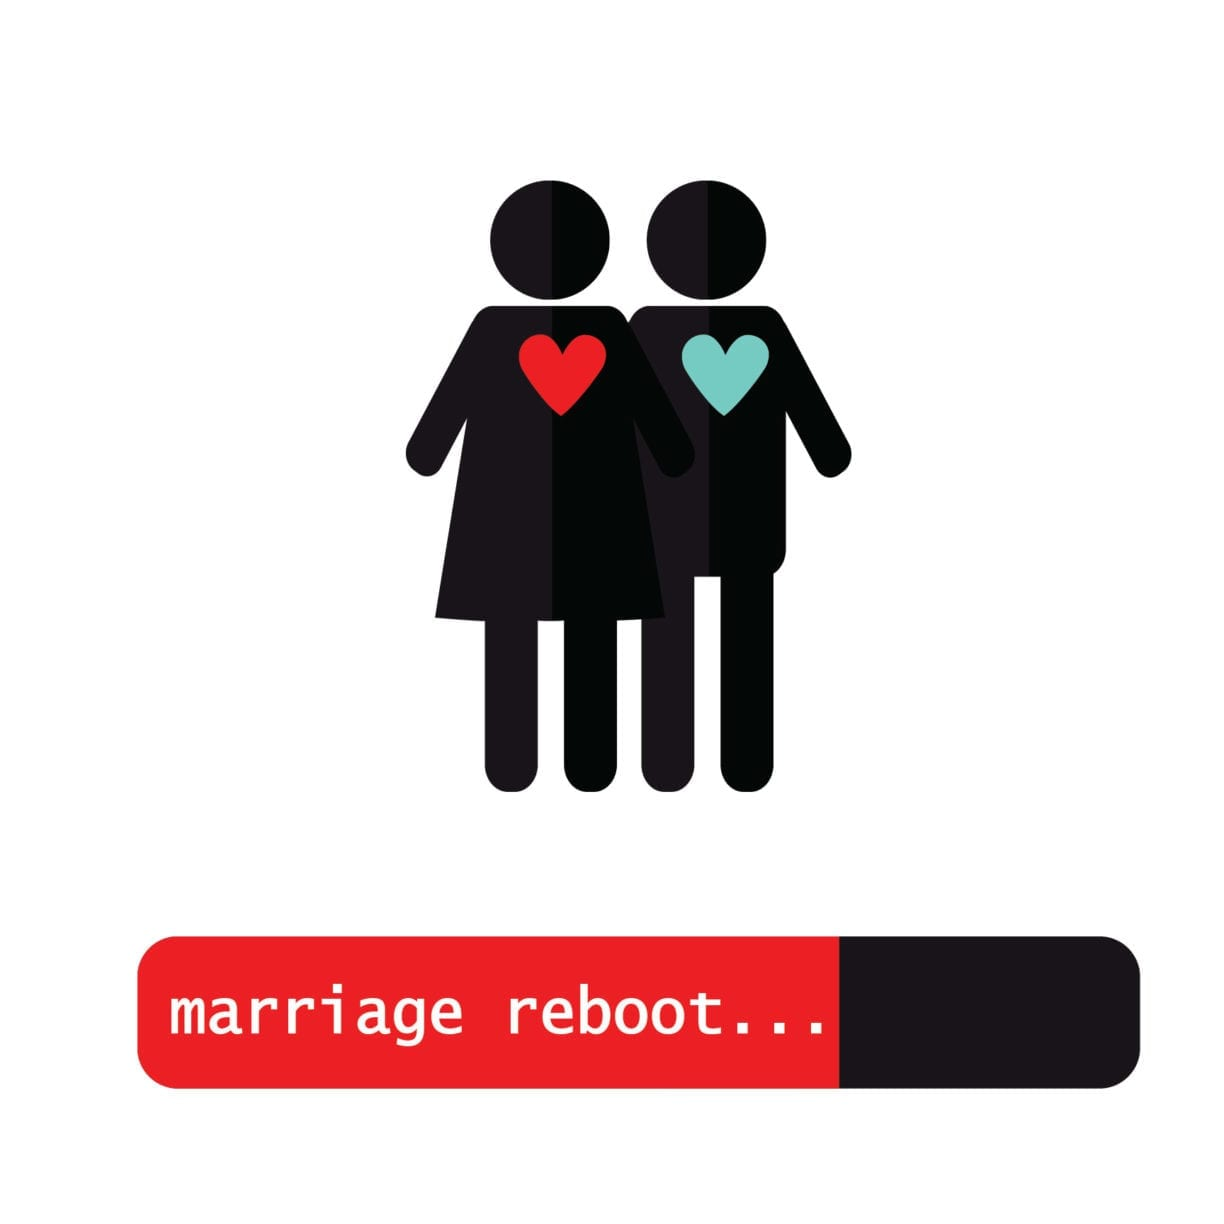 Marriage Reboot Archives • DJ Horton